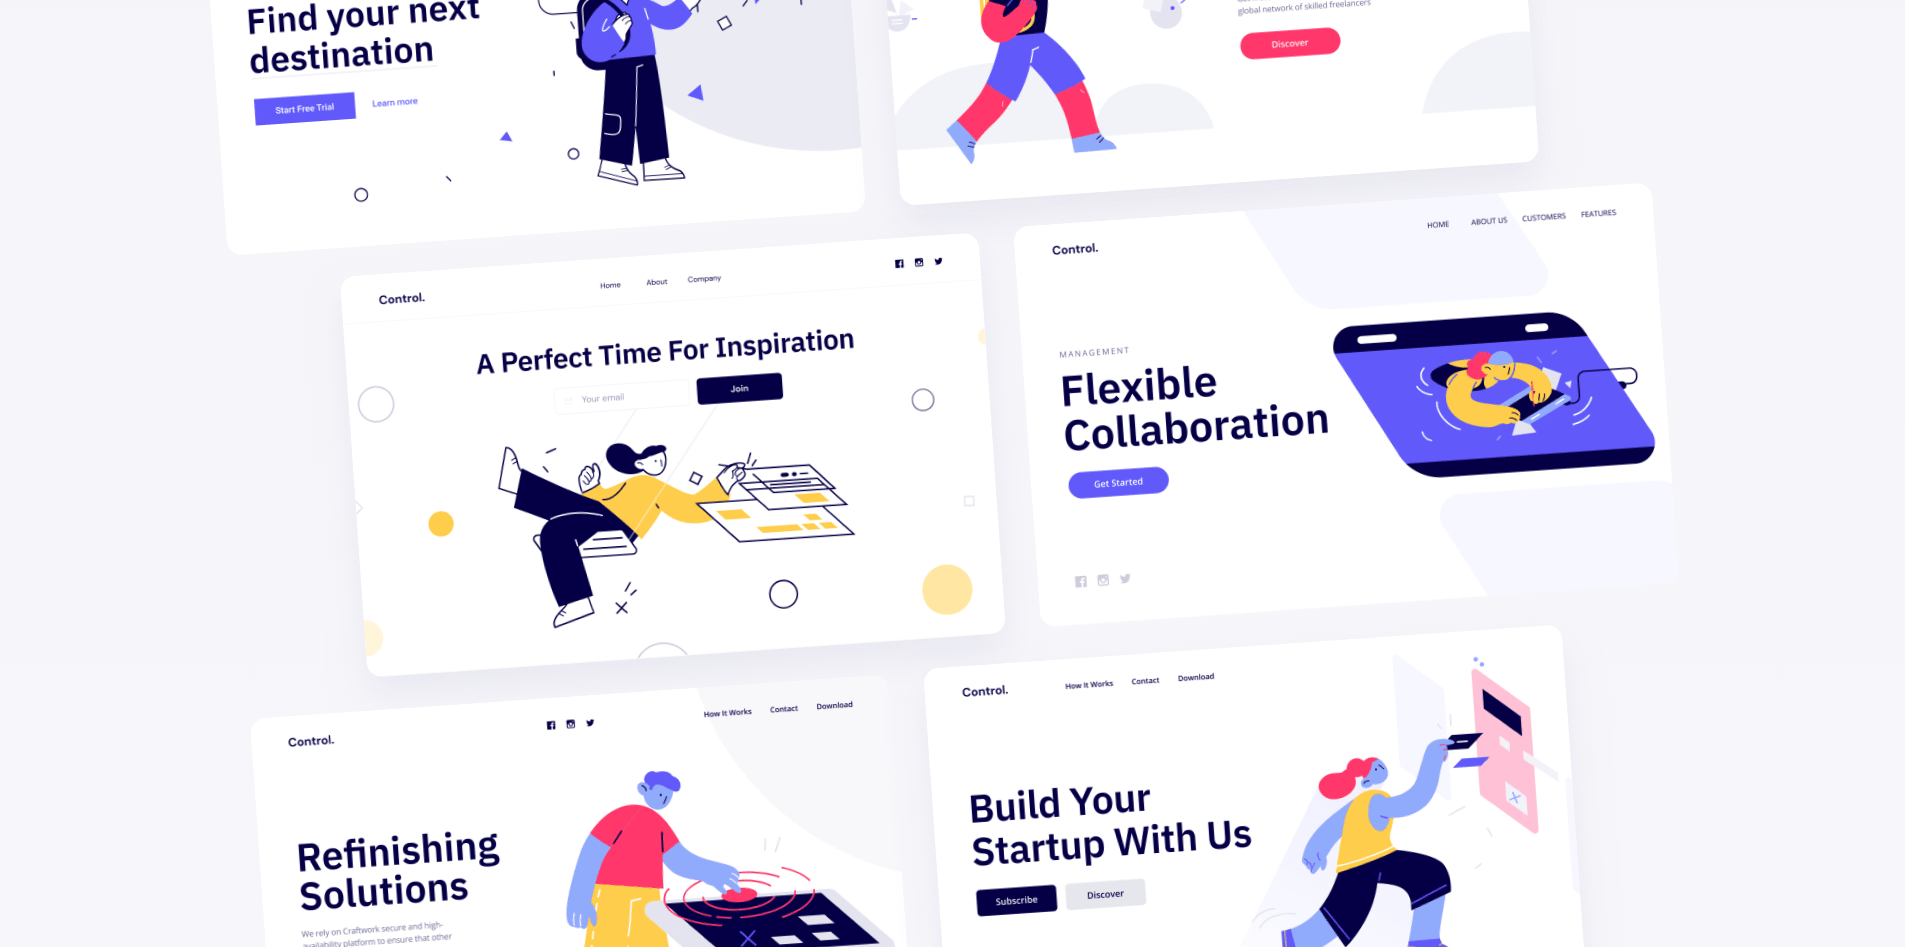 Control landing page